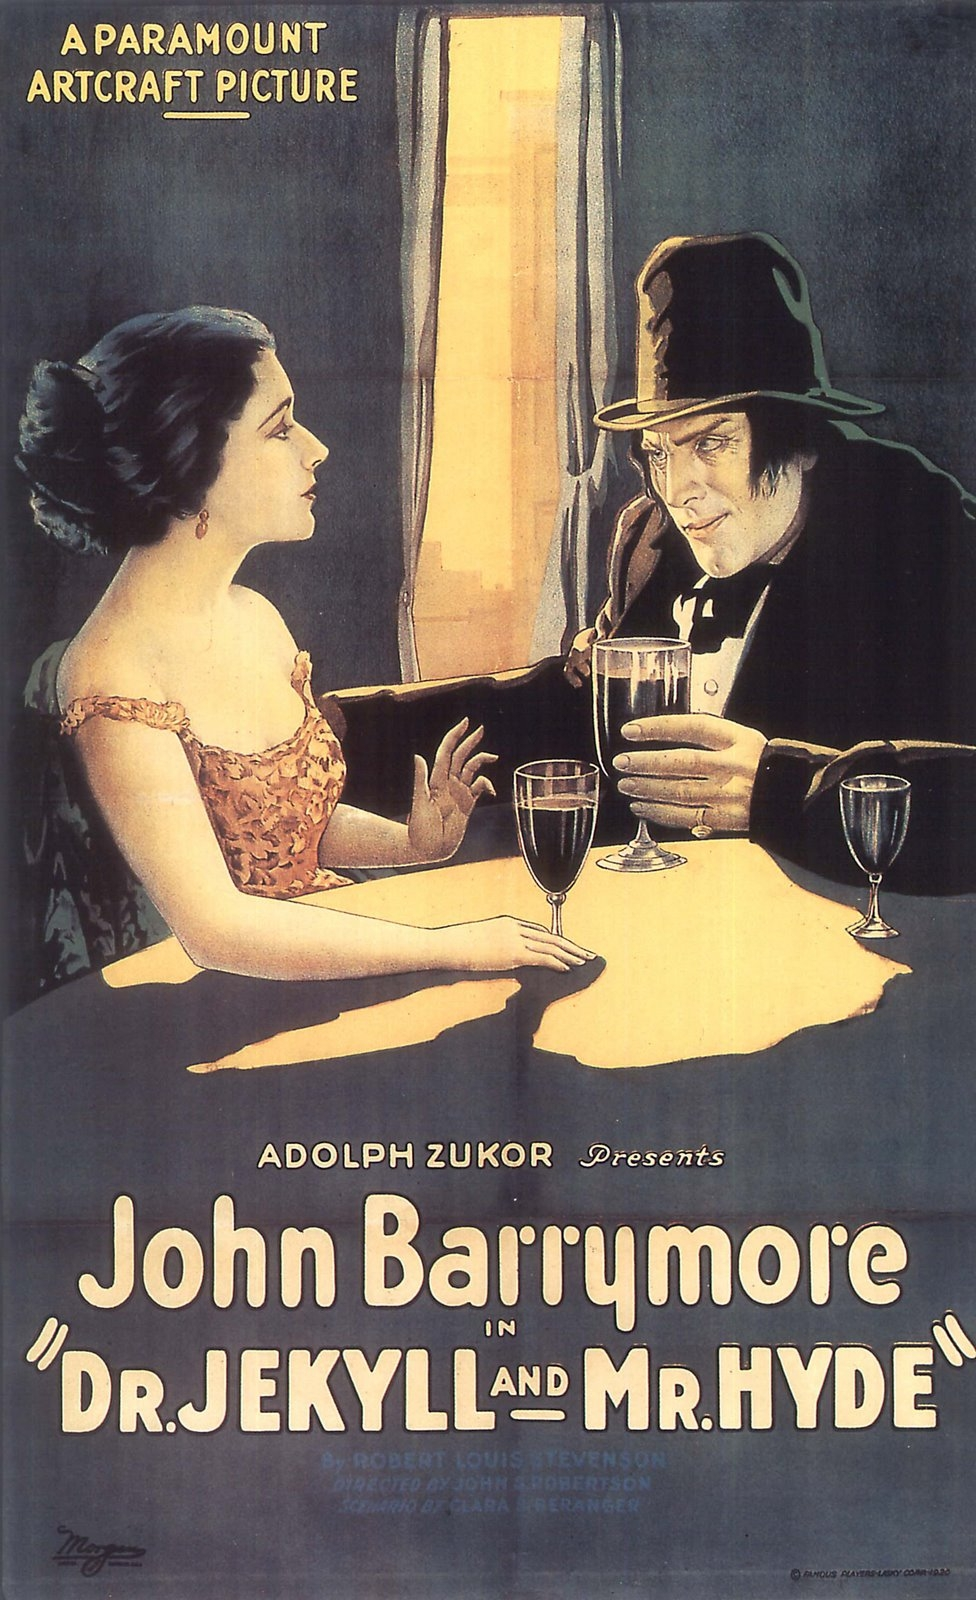 1920 film starring John Barrymore.